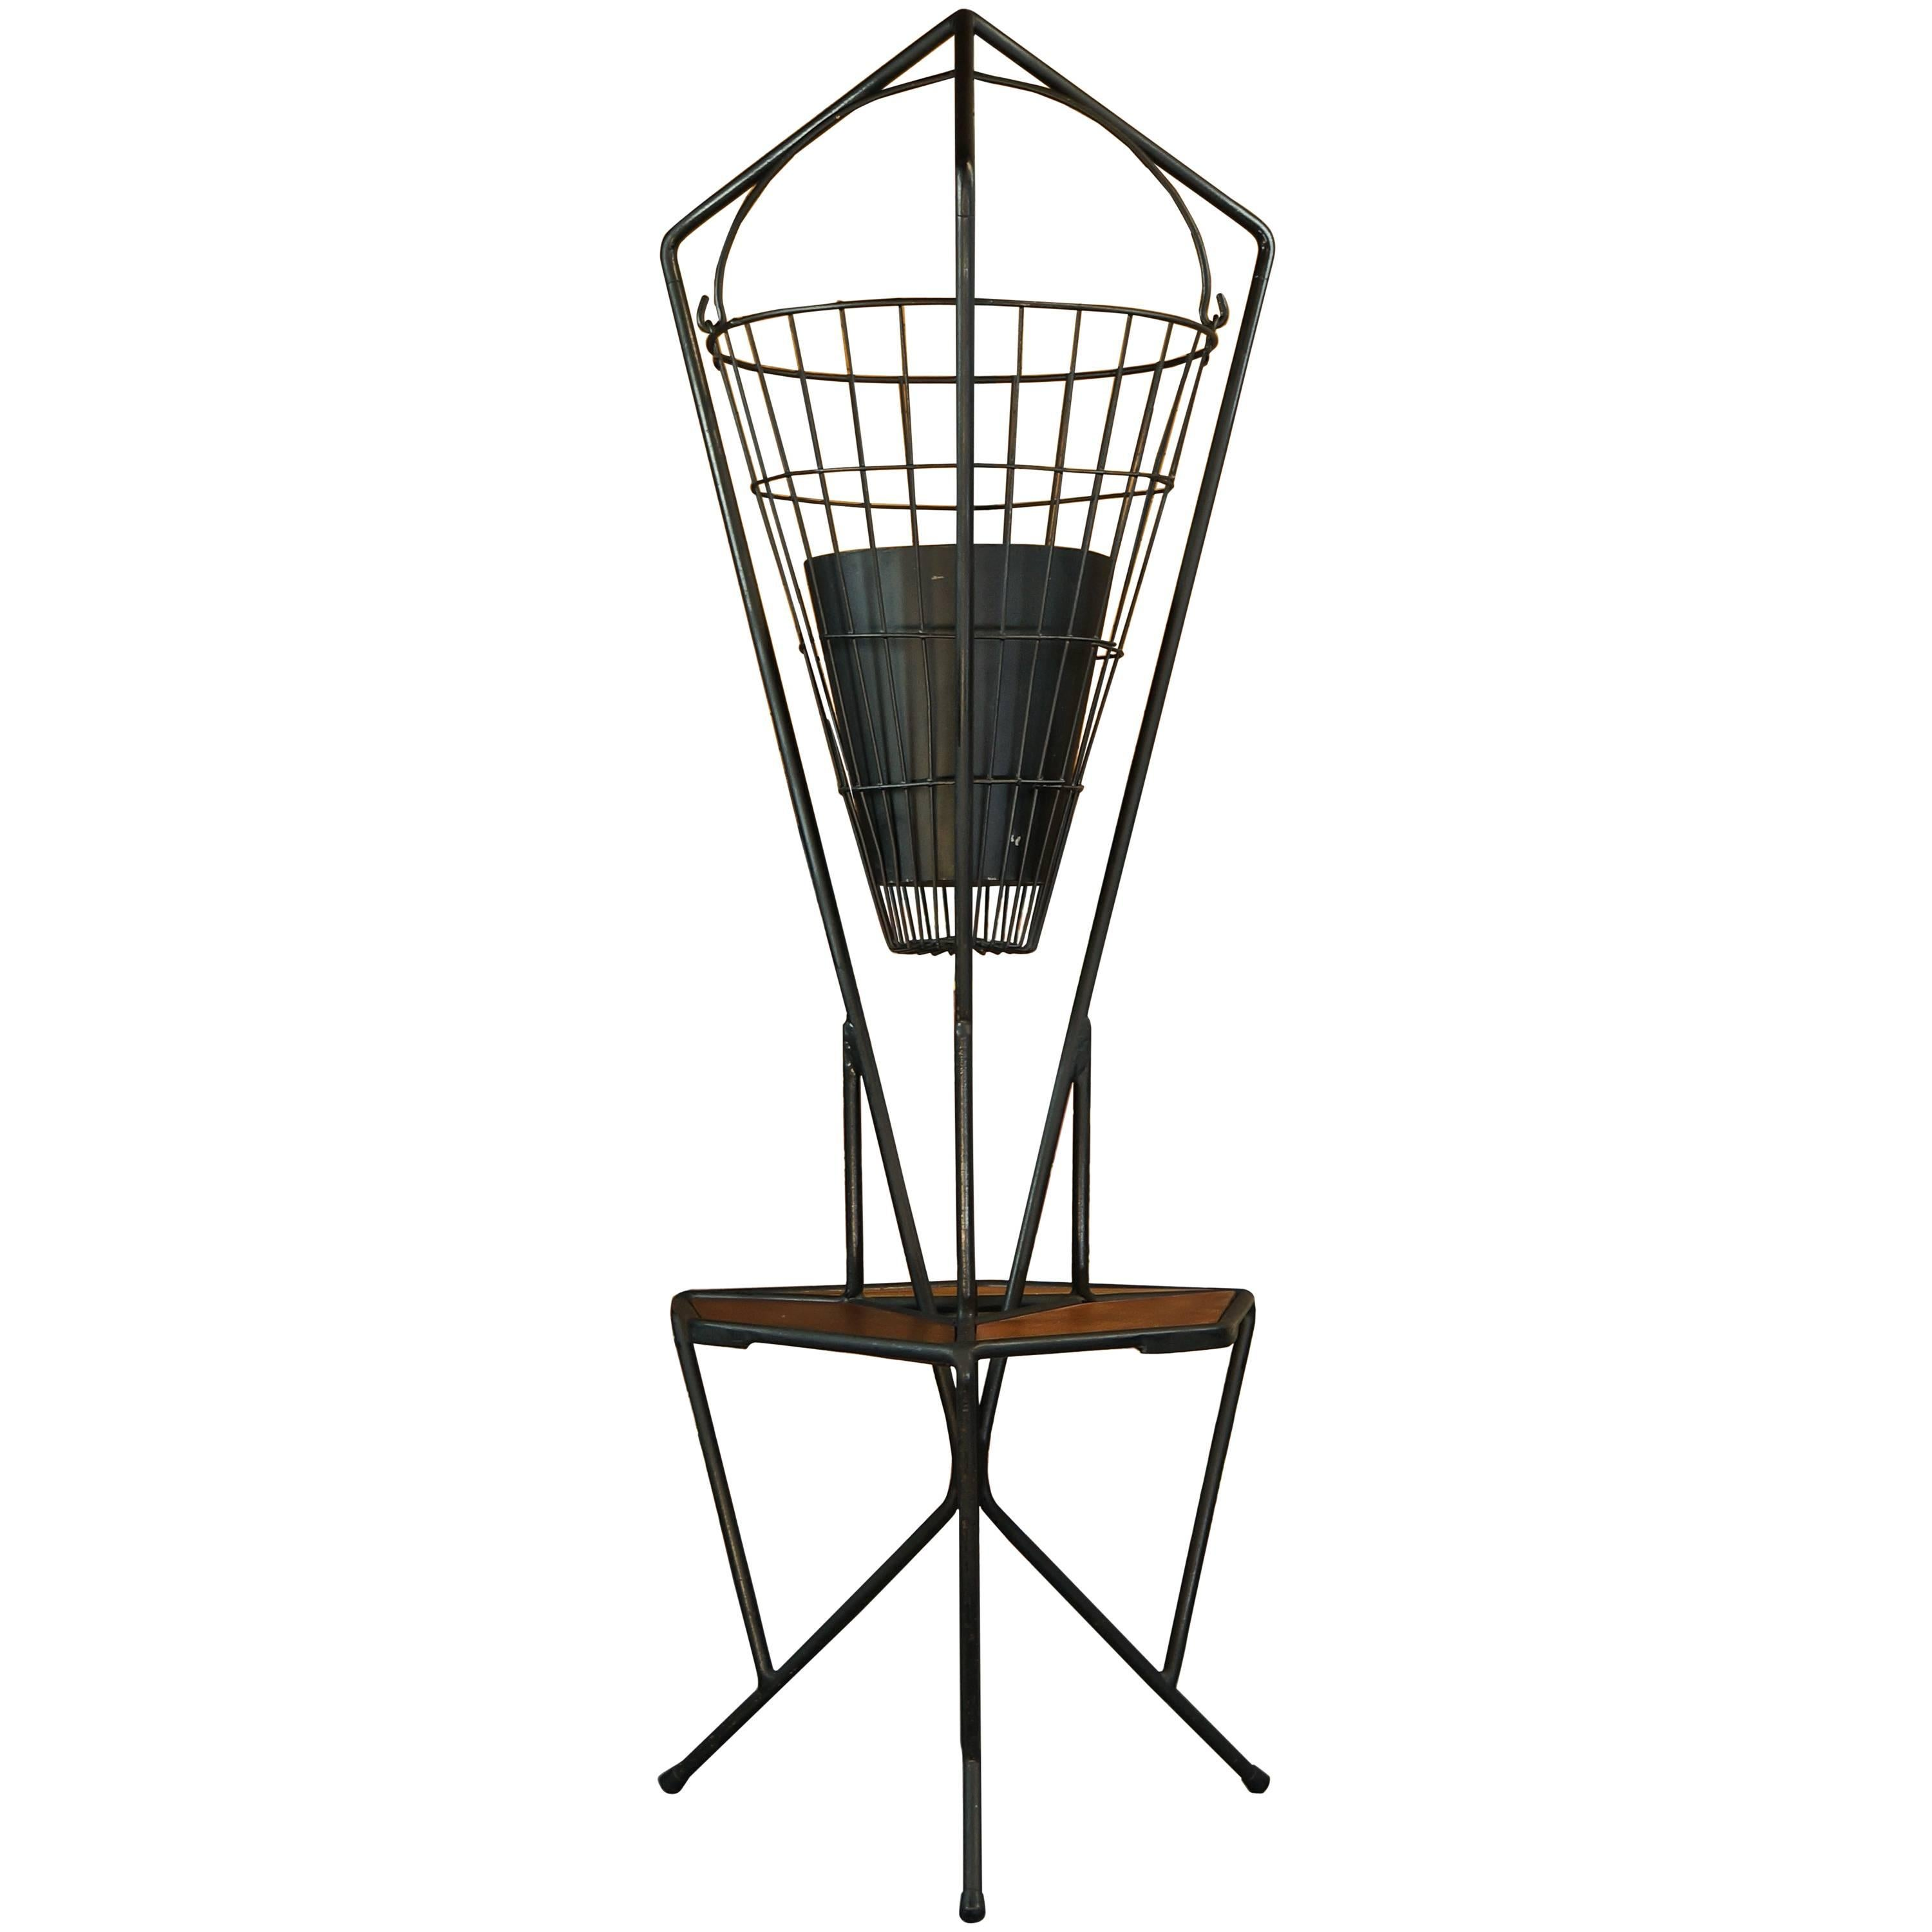 midcentury vintage 1960s iron and teak hanging planter plant stand Mercury Milan Hood midcentury vintage 1960s iron and teak hanging planter plant stand side table for sale at 1stdibs